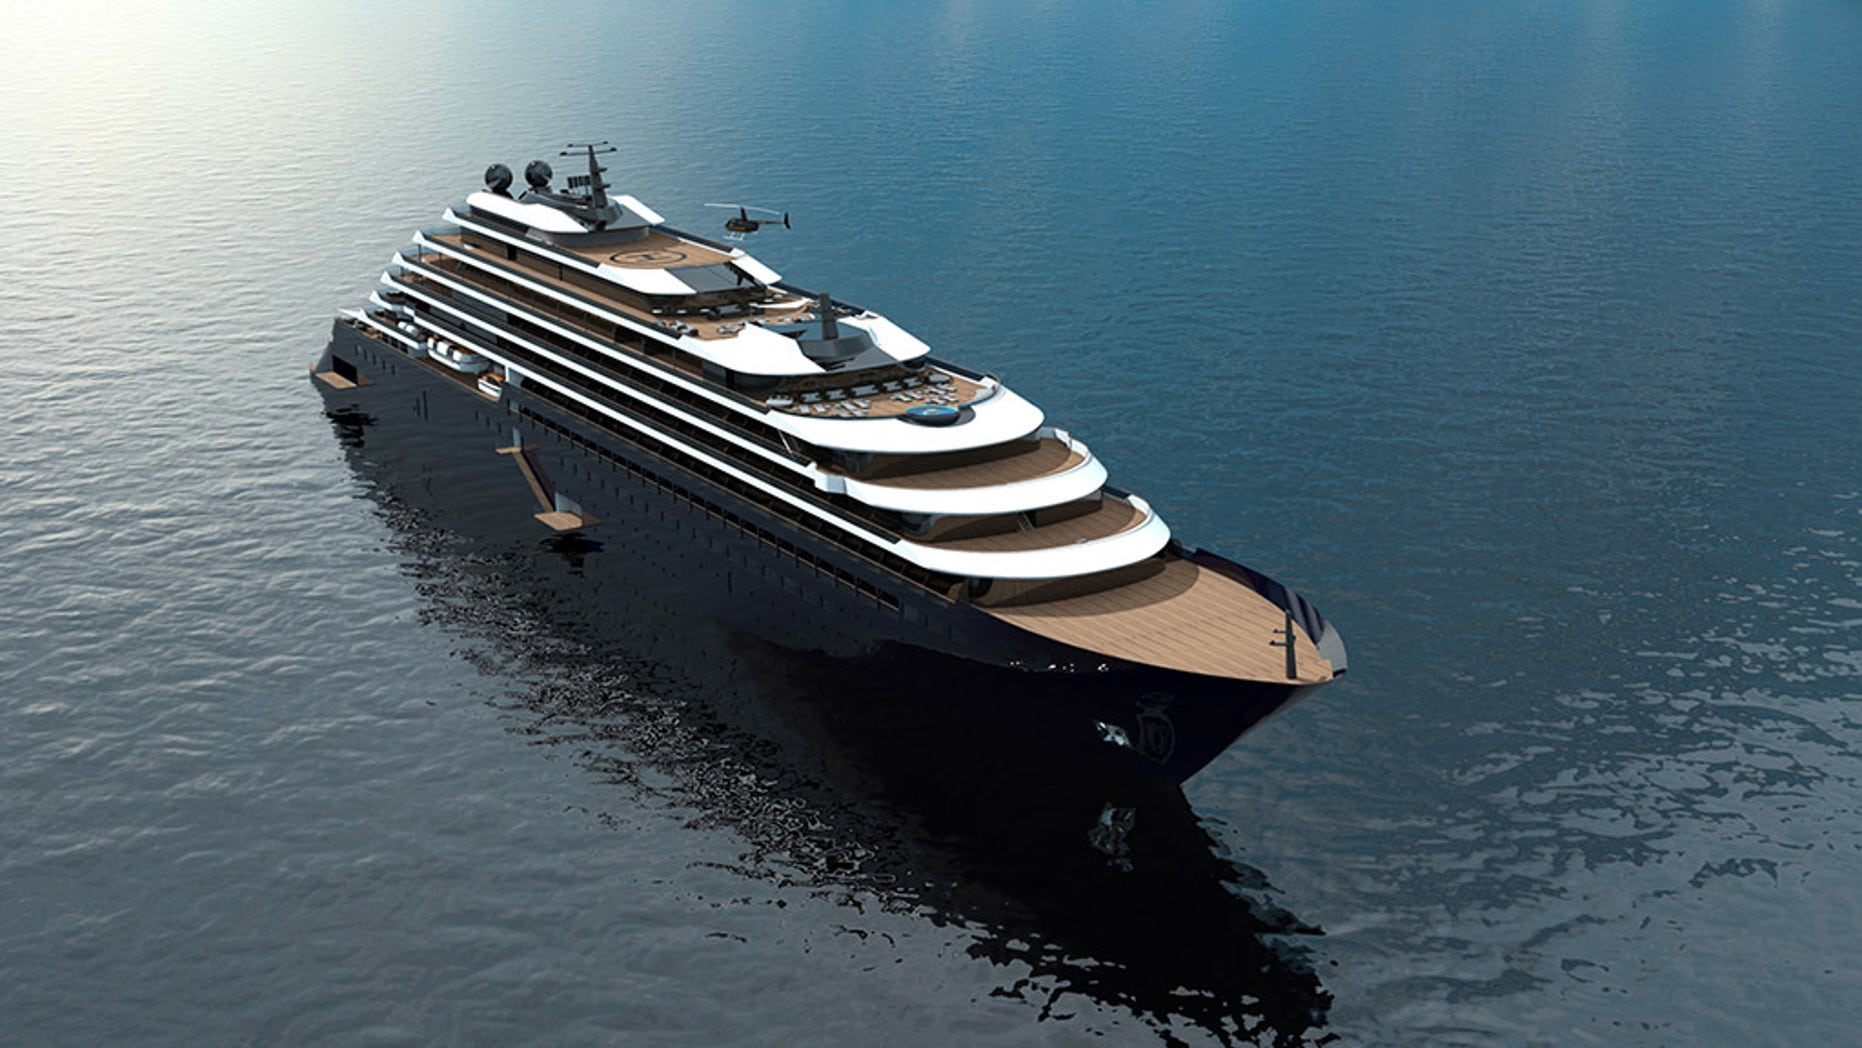 The luxury hotel company celebrated with a launching ceremony and maritime blessing.